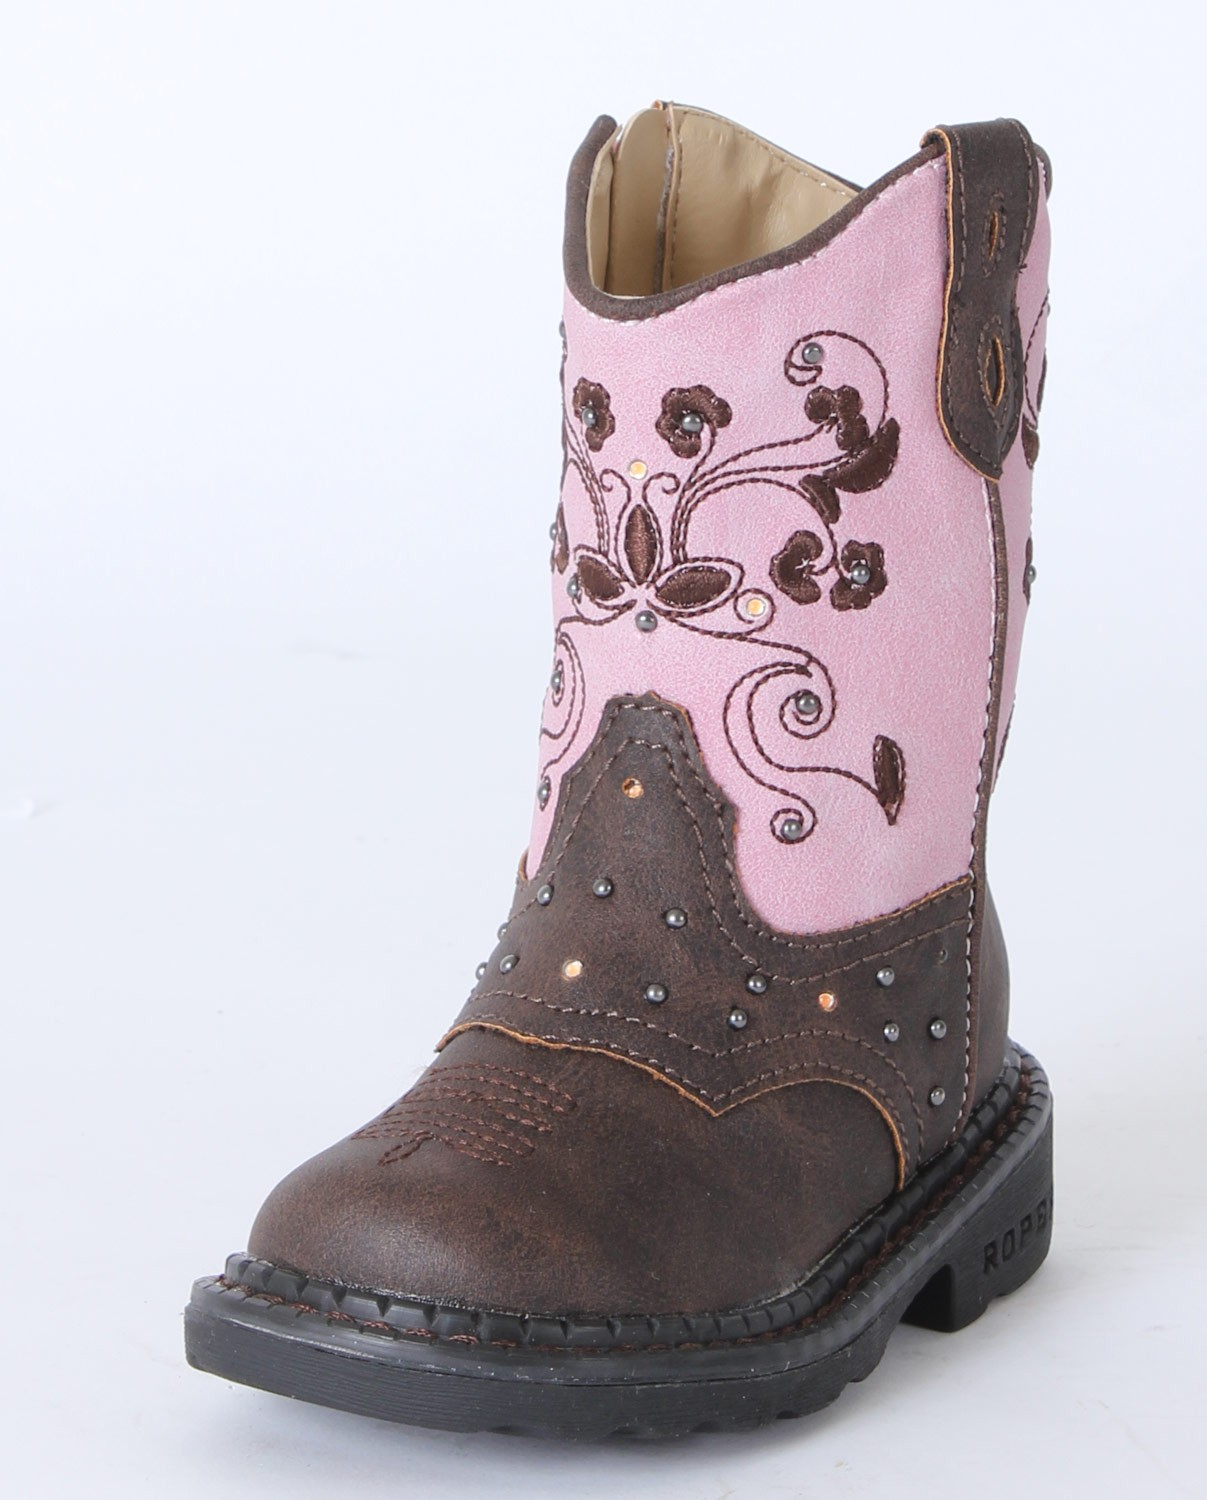 Roper® Girls' Brown & Pink Dazzle Lights Boots - Toddler - Fort Brands